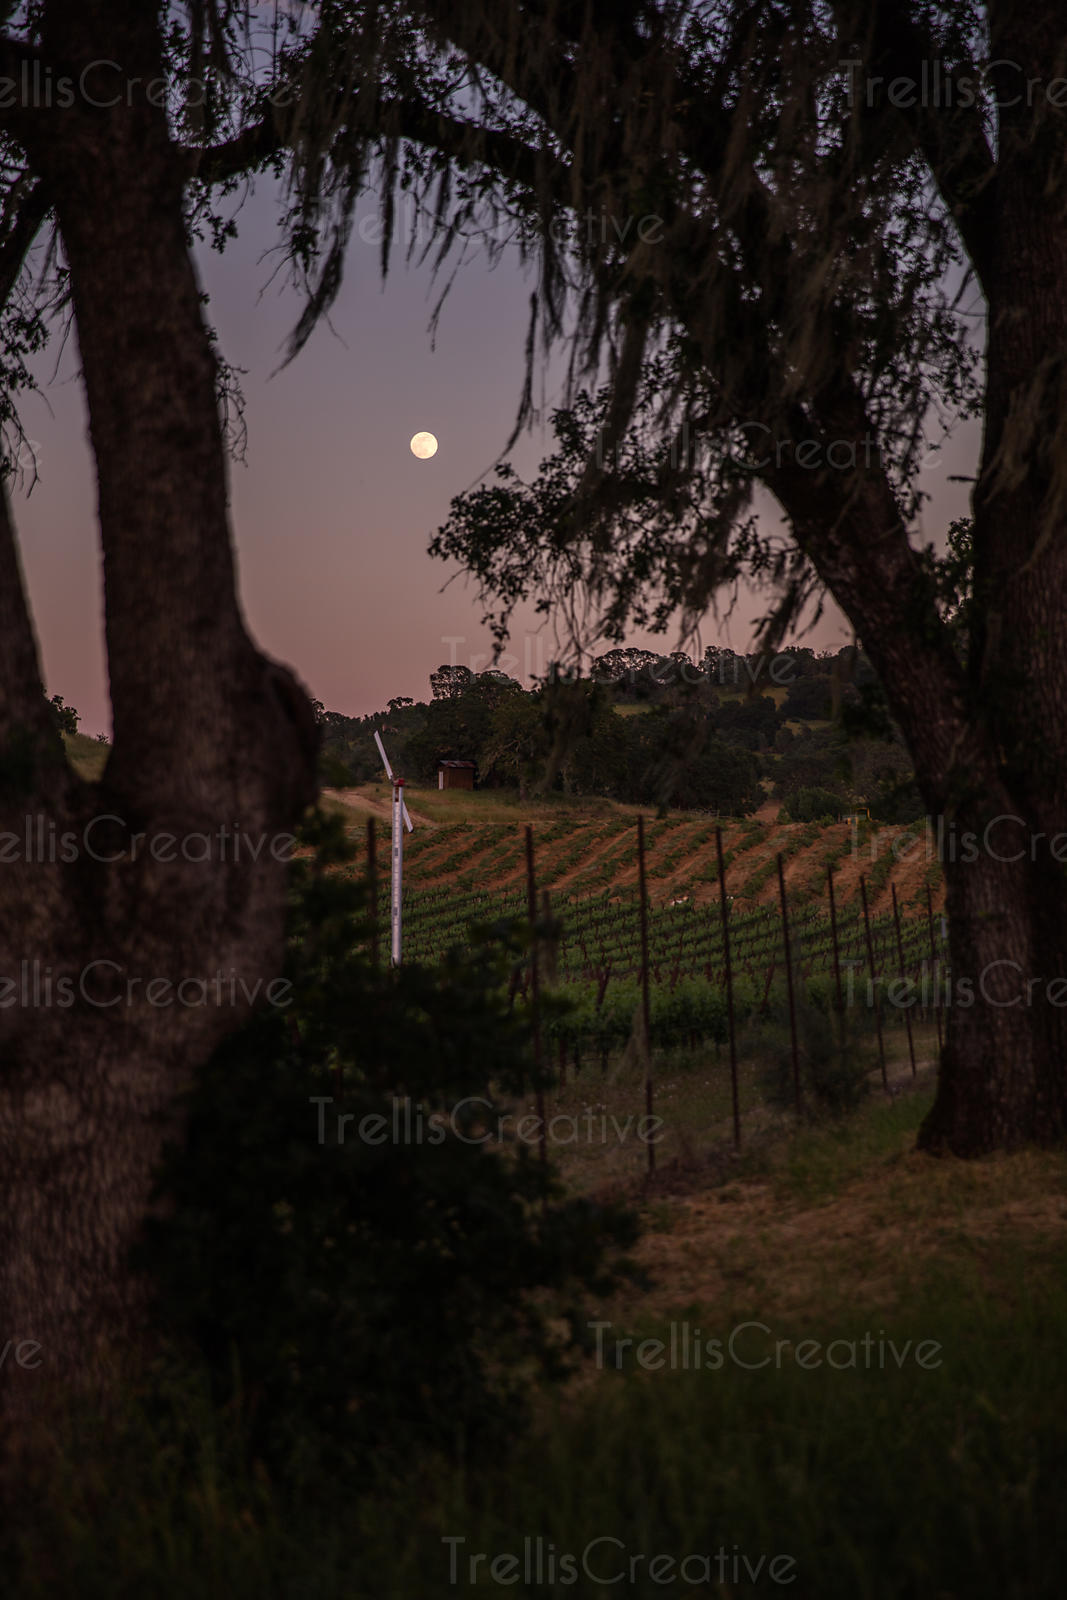 Full moon over vineyards at dusk